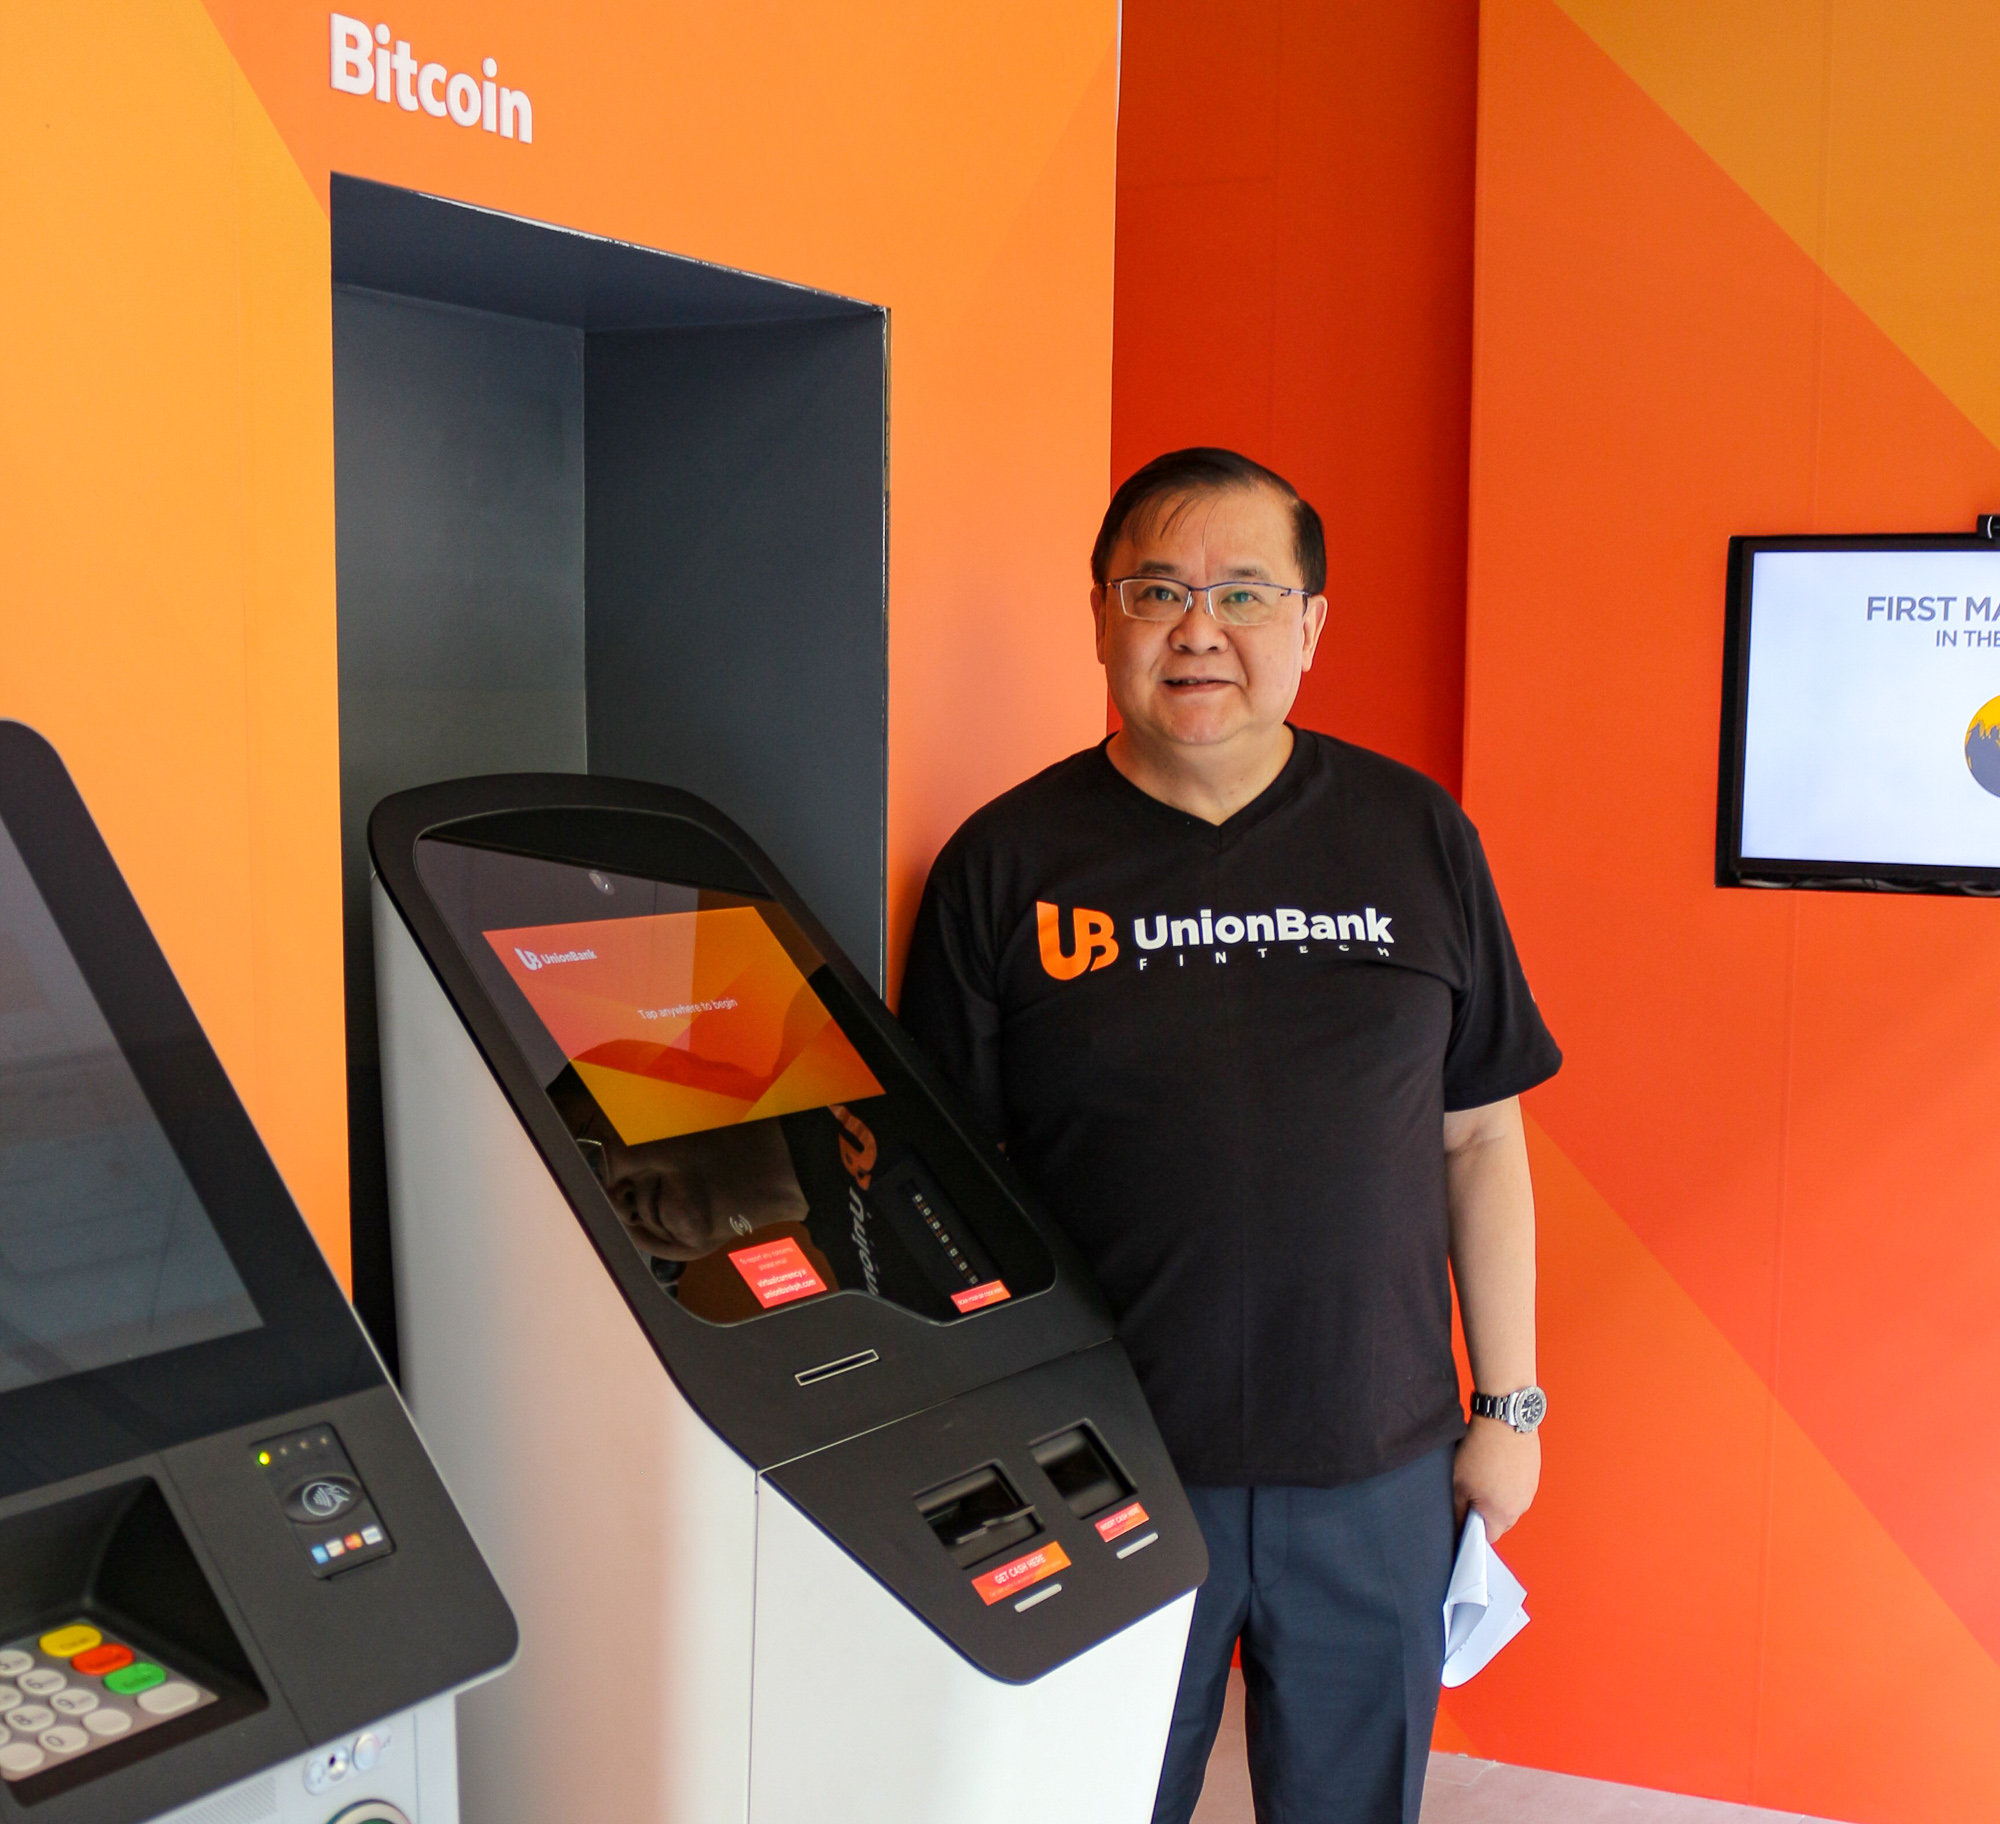 UnionBank President Edwin Bautista next to the country's first bi-directional cryptocurrency ATM, which allows both purchase and sale of Bitcoins.